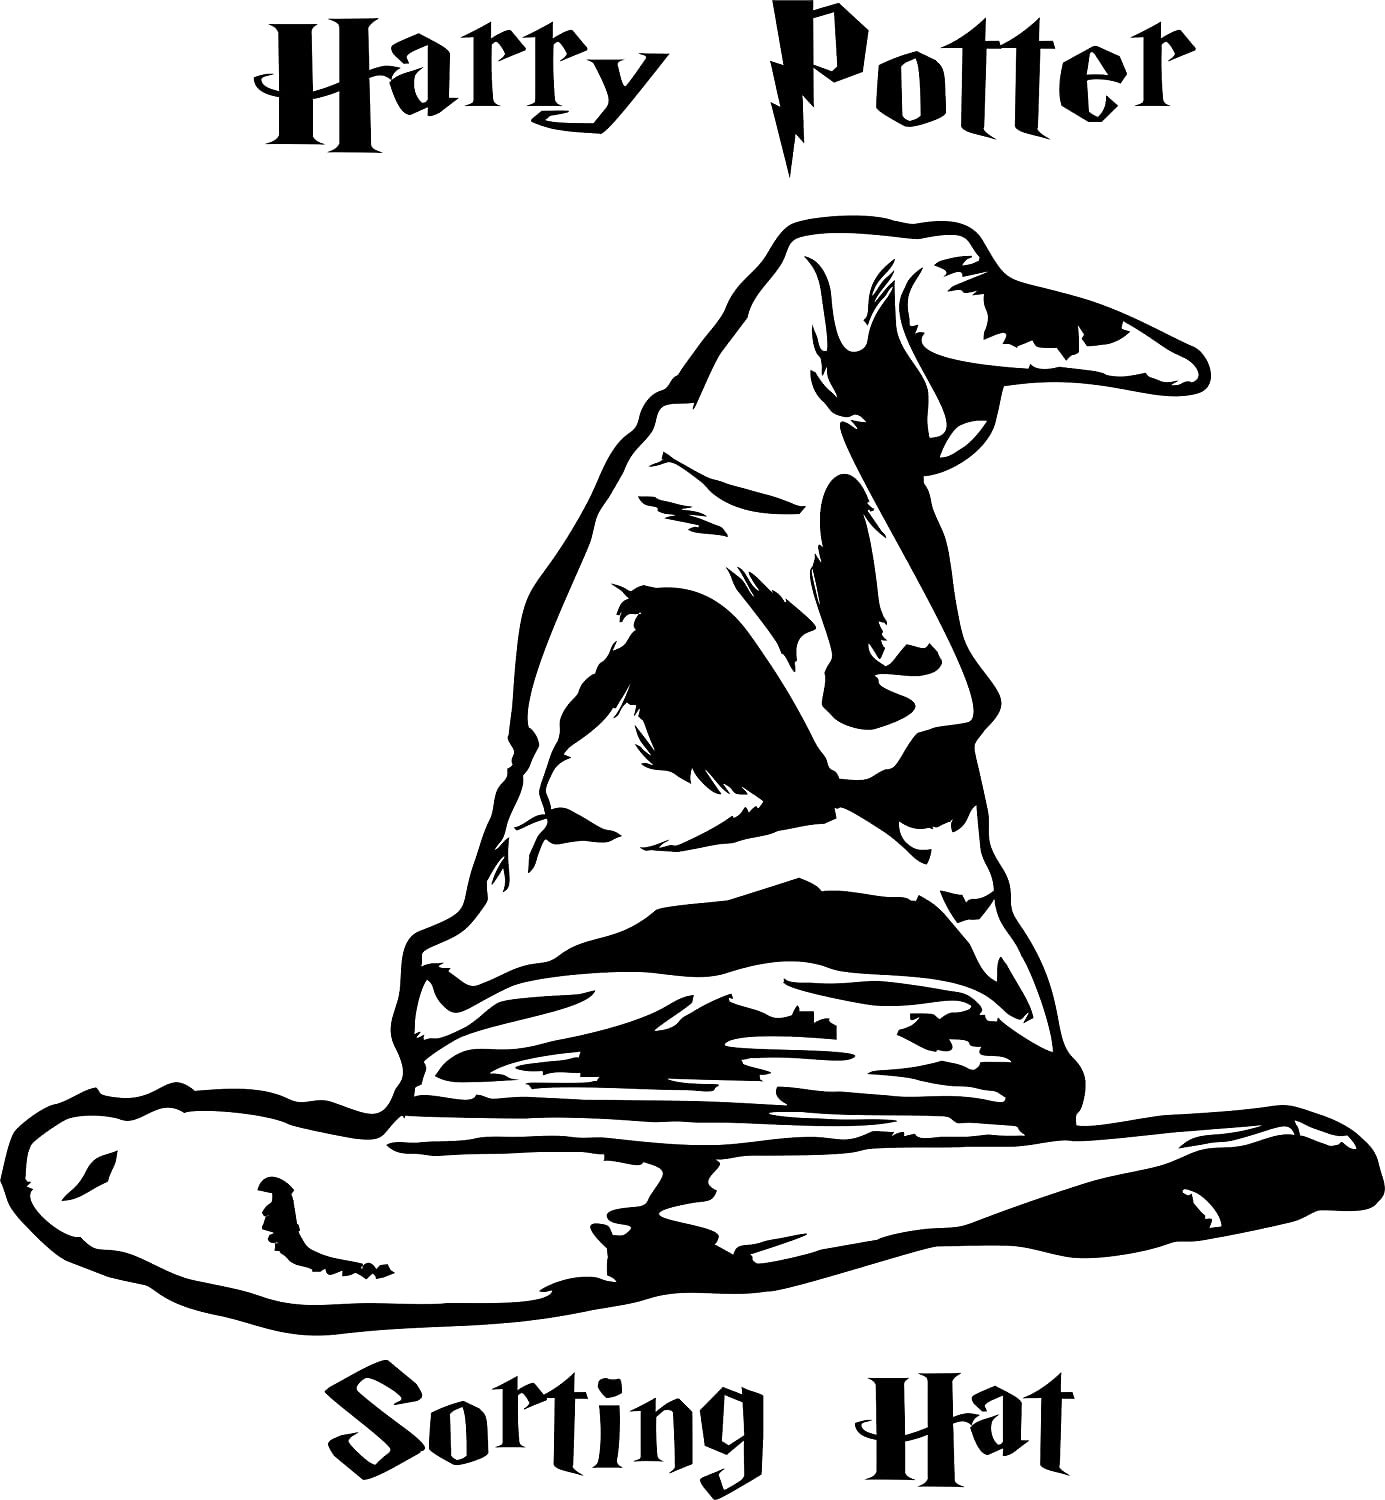 Harry Potter Sorting Hat Clip Art on shark wallpaper